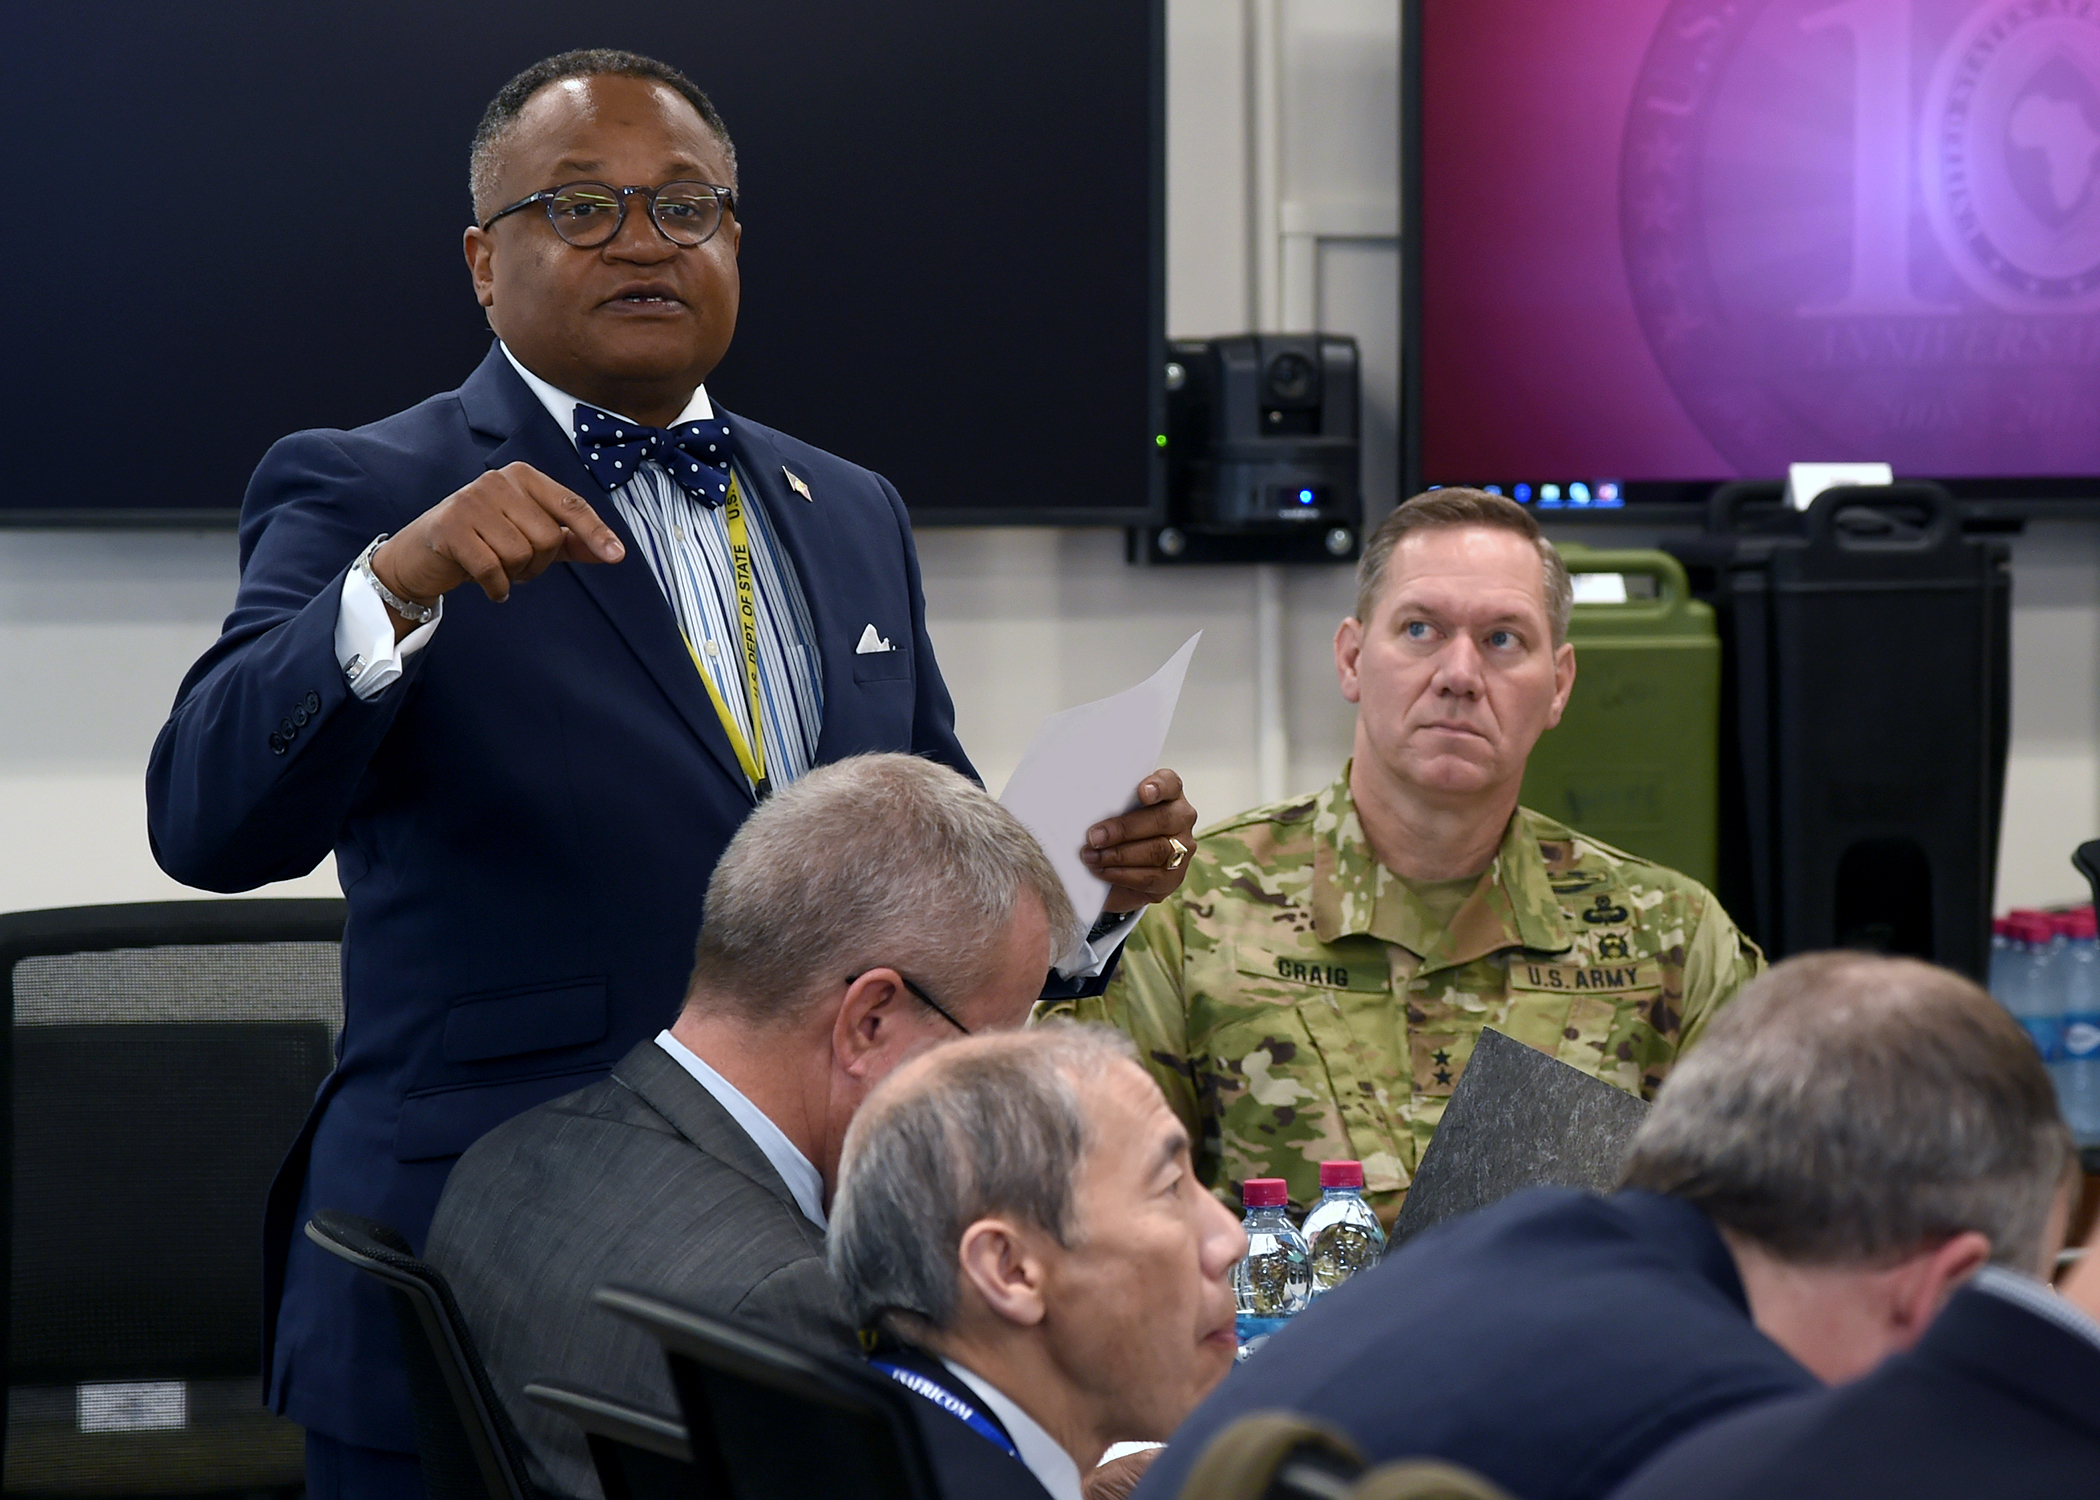 Irvin Hicks Jr., foreign policy advisor (POLAD) for Combined Joint Task Force-Horn of Africa (CJTF-HOA), addresses U.S. diplomats and joint service personnel at a meeting during the CJTF-HOA East Africa Security Forum (EASF) at Camp Lemonnier, Djibouti, Dec. 13, 2018. The EASF provides opportunities for CJTF-HOA and interagency leaders to assess and align efforts, and develop synchronized courses of action that support common goals. (U.S. Navy photo by Mass Communication Specialist 1st Class Nick Scott)